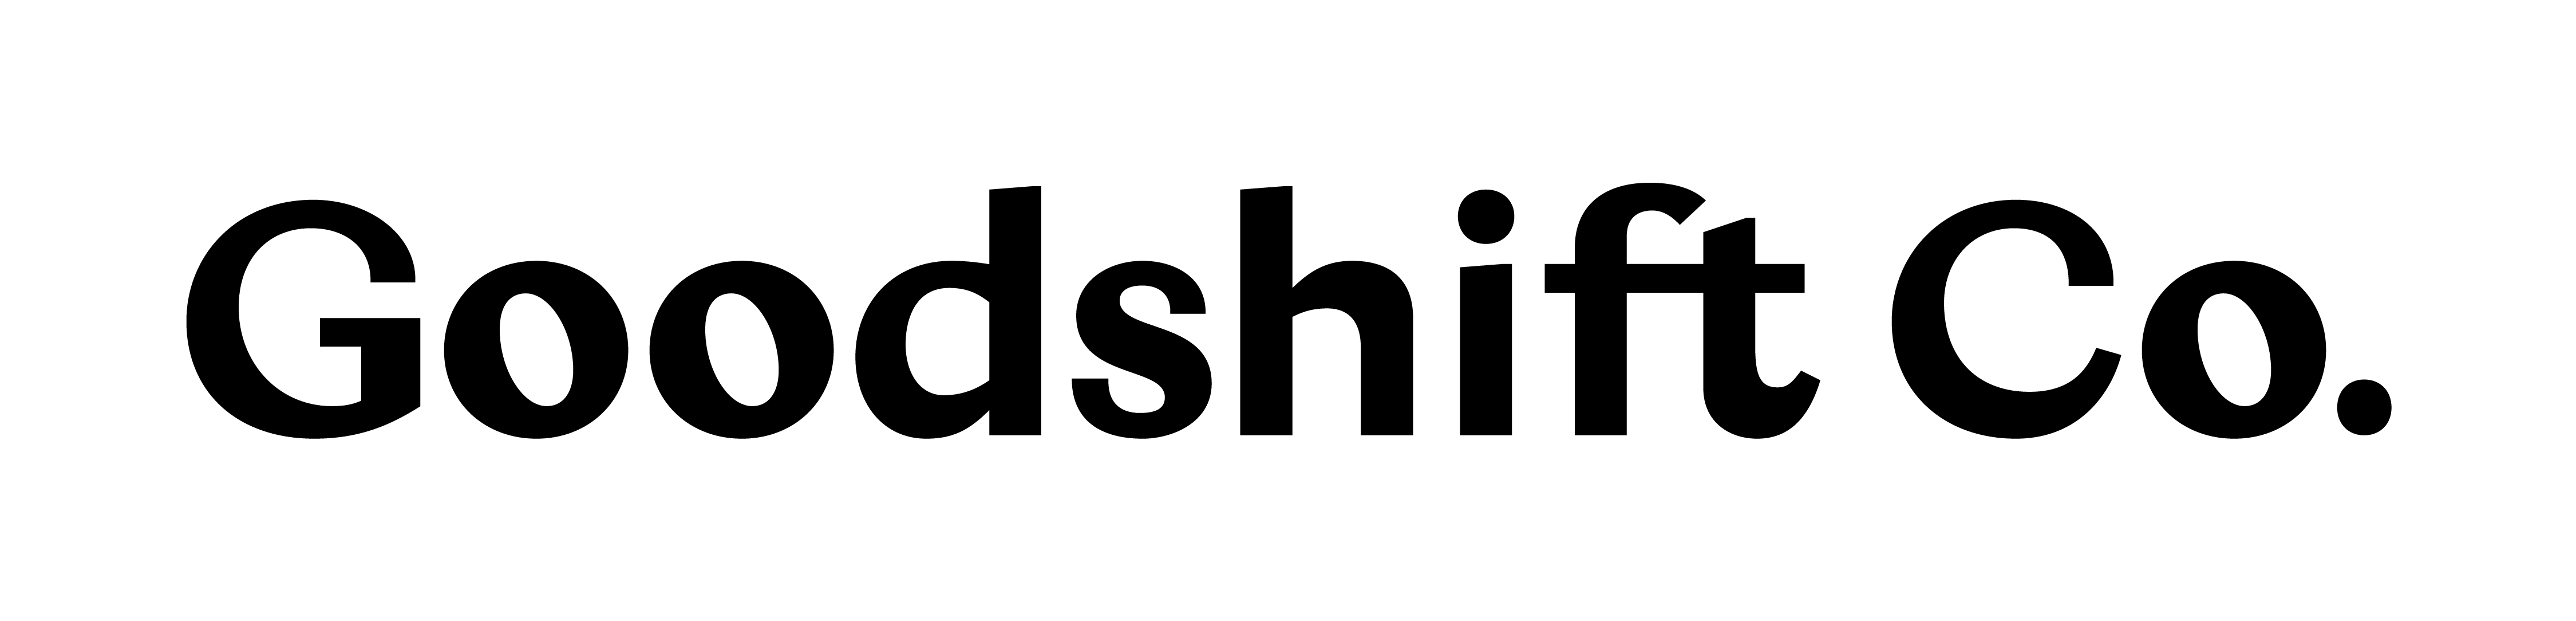 Goodshift Co